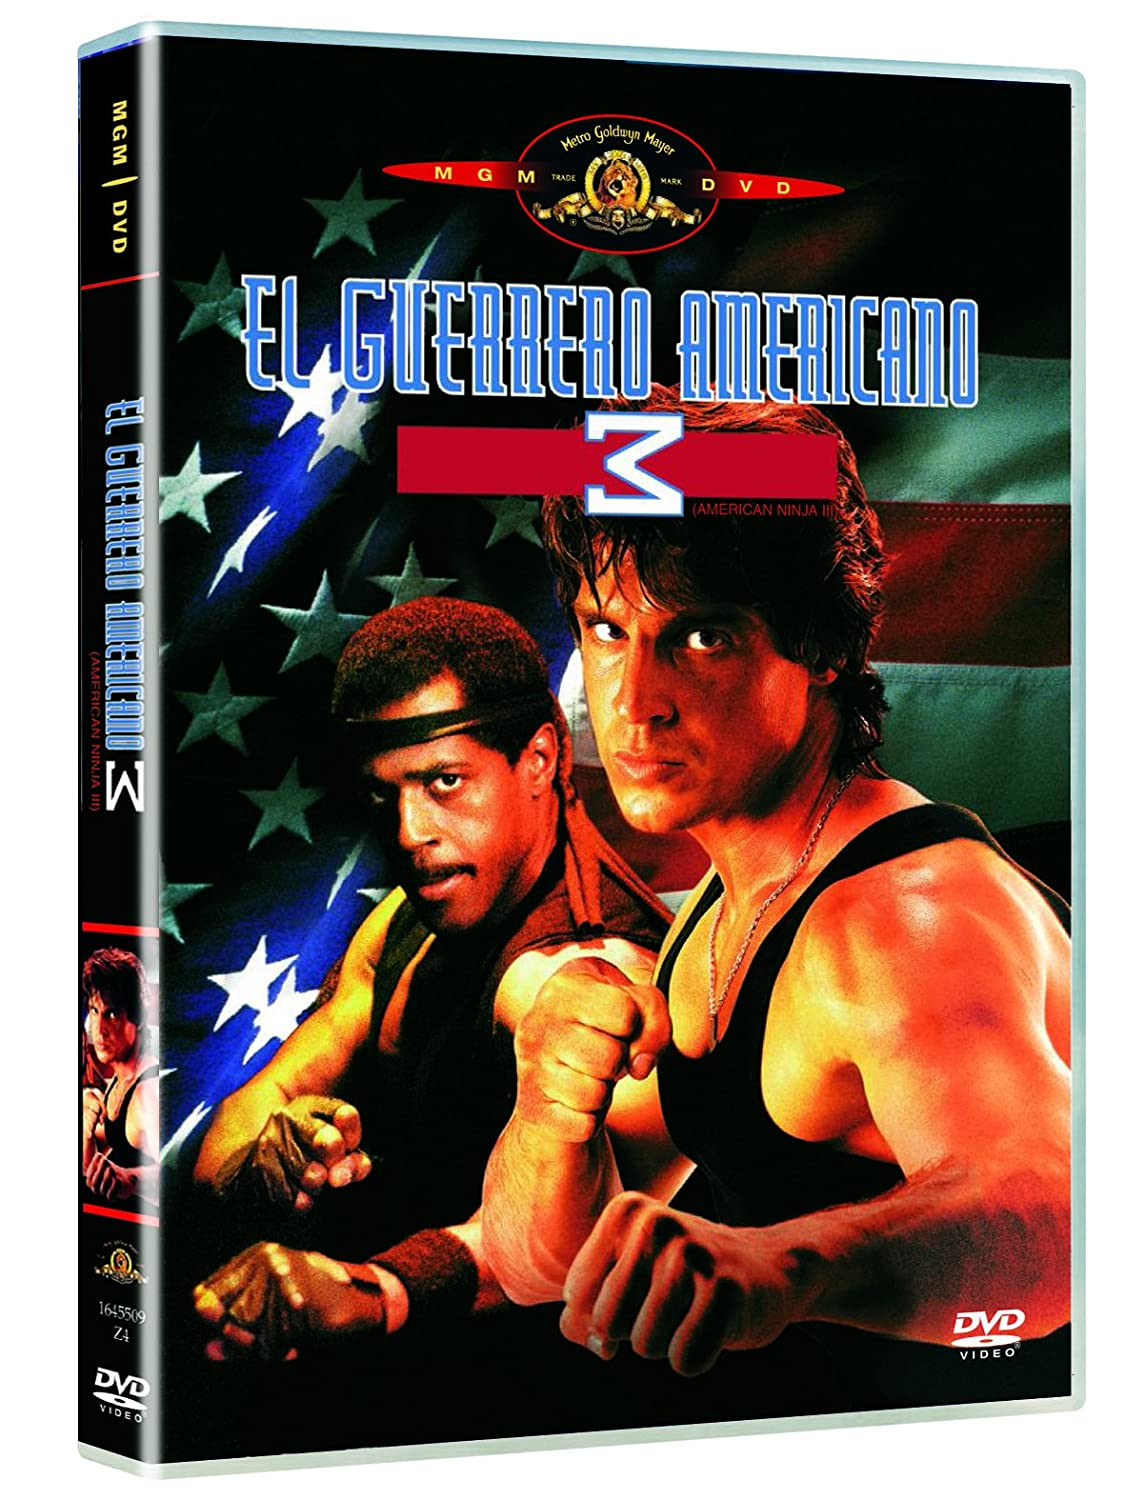 Amazon.com: il guerriero americano 3 dvd Italian Import ...